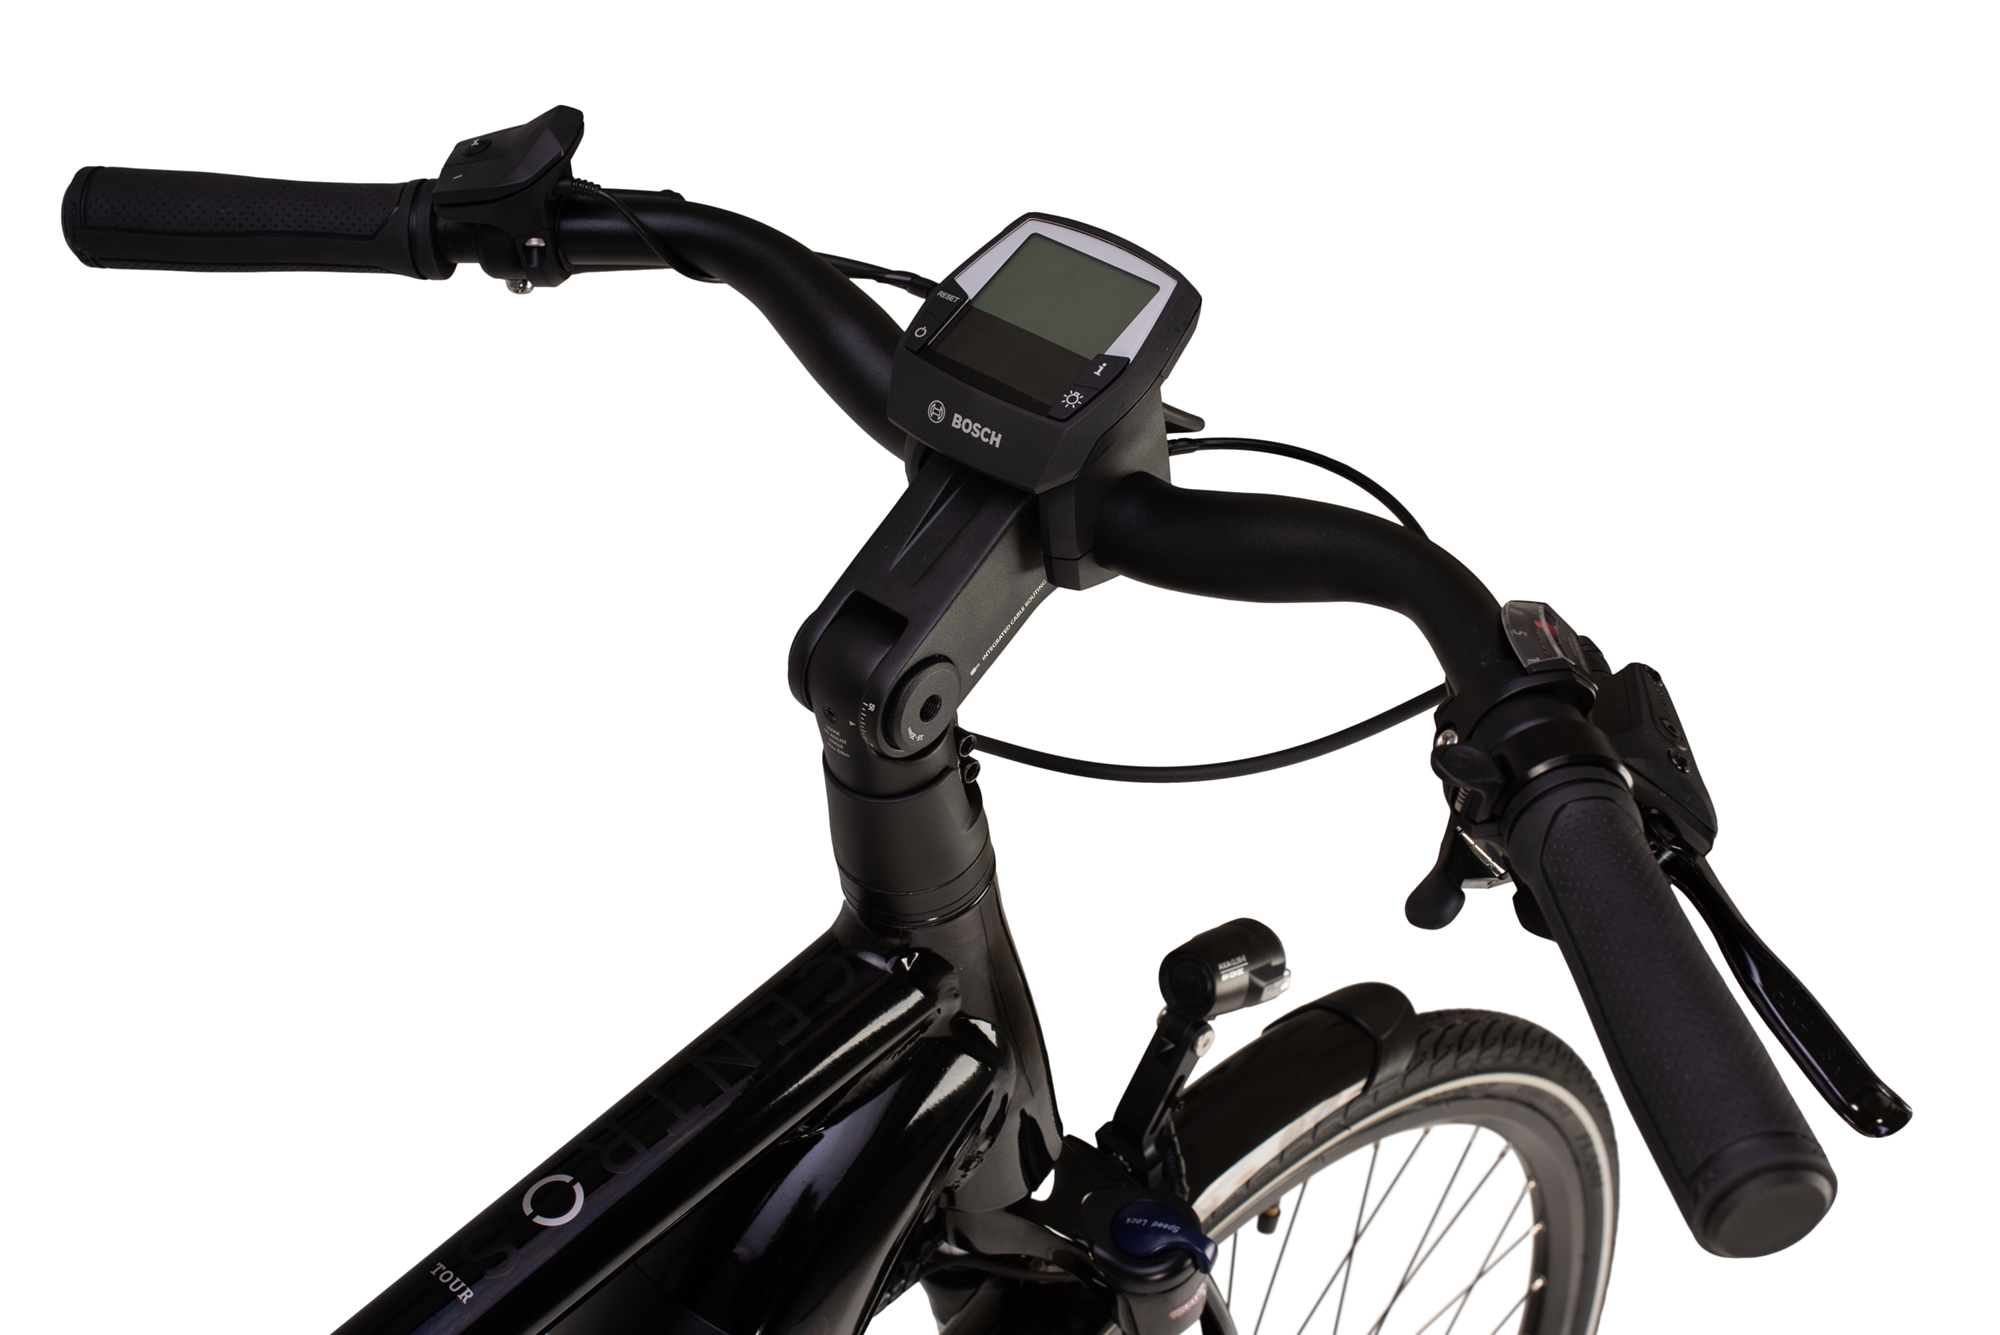 Handlebars and controller on the Raleigh Centros Tour electric bike